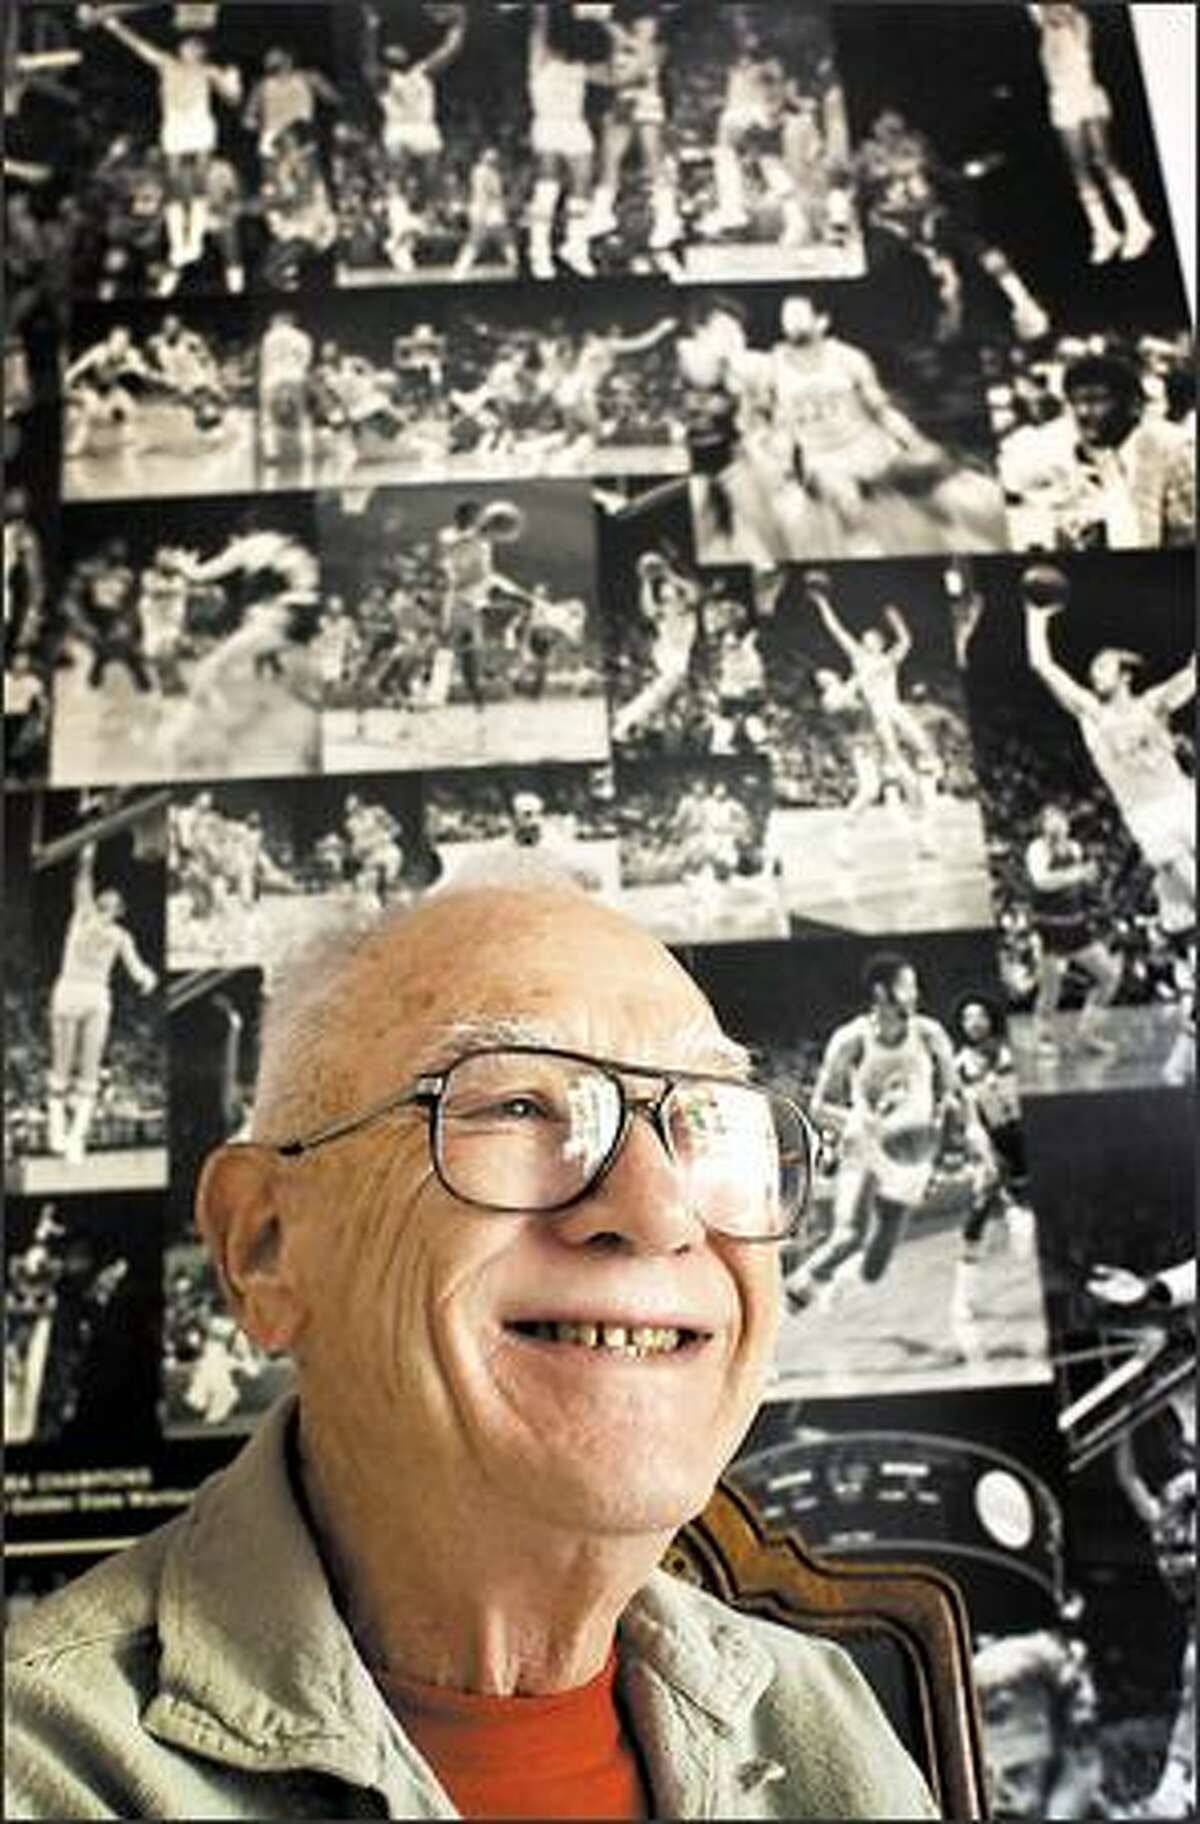 Dick Vertlieb retains a poster of the 1974 NBA champion Golden State Warriors, of whom he was general manager.